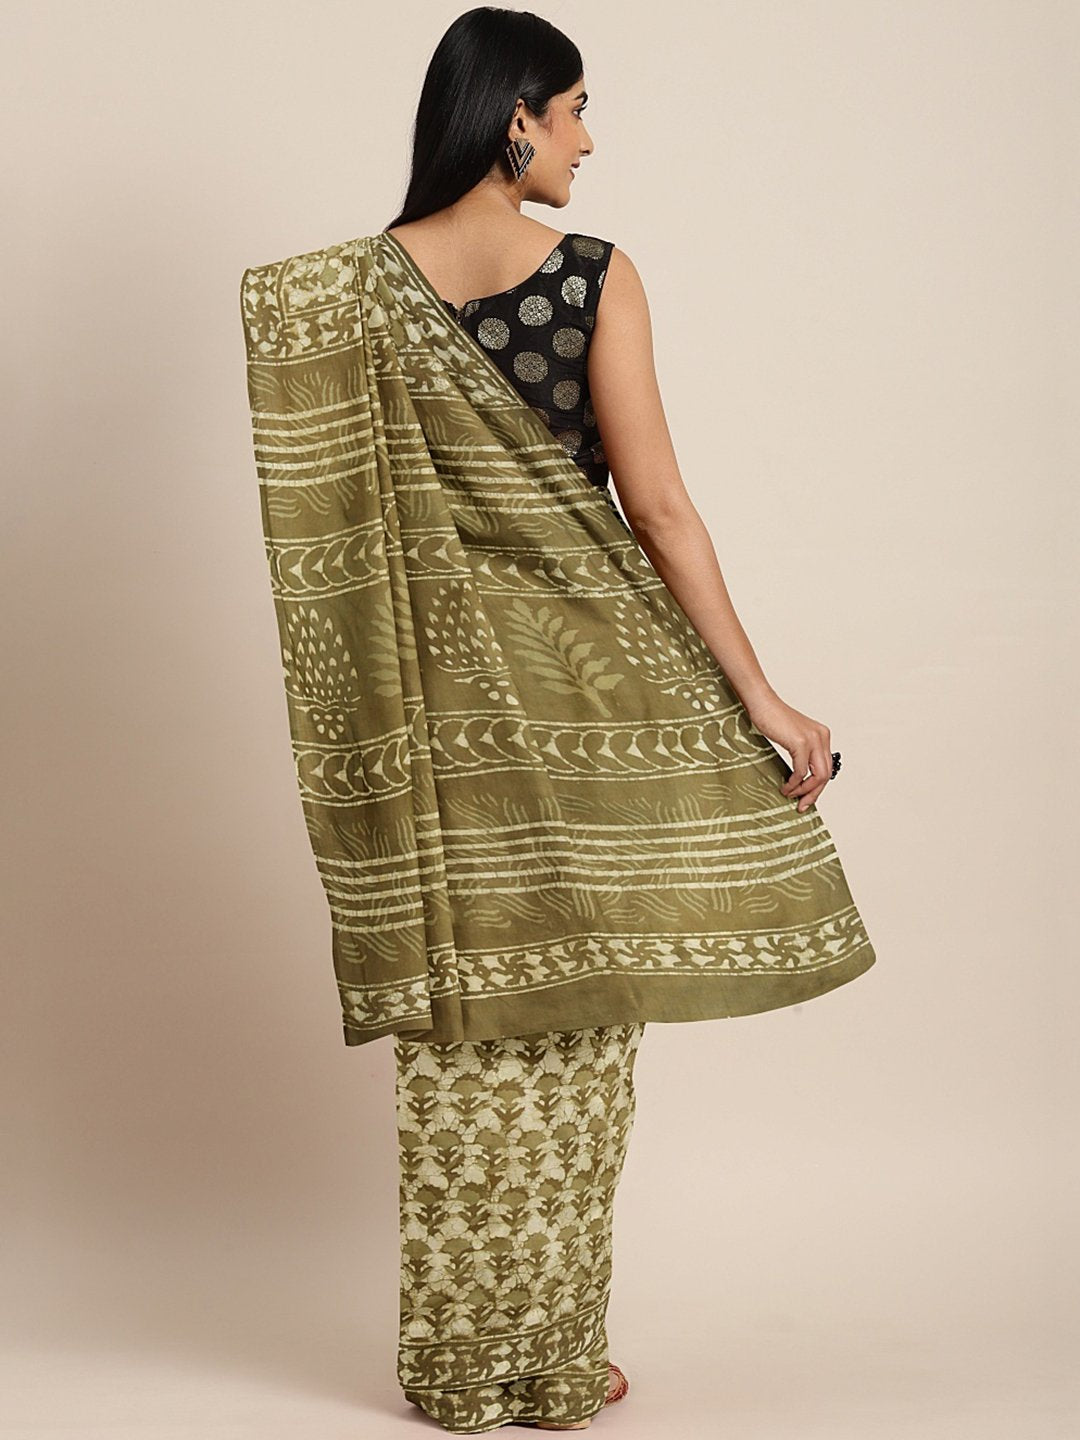 Green Off-White Dabu Handblock Print Bagru Saree-Saree-Kalakari India-BHKPSA0078-Cotton, Dabu, Geographical Indication, Hand Blocks, Hand Crafted, Heritage Prints, Indigo, Natural Dyes, Sarees, Sustainable Fabrics-[Linen,Ethnic,wear,Fashionista,Handloom,Handicraft,Indigo,blockprint,block,print,Cotton,Chanderi,Blue, latest,classy,party,bollywood,trendy,summer,style,traditional,formal,elegant,unique,style,hand,block,print, dabu,booti,gift,present,glamorous,affordable,collectible,Sari,Saree,printed